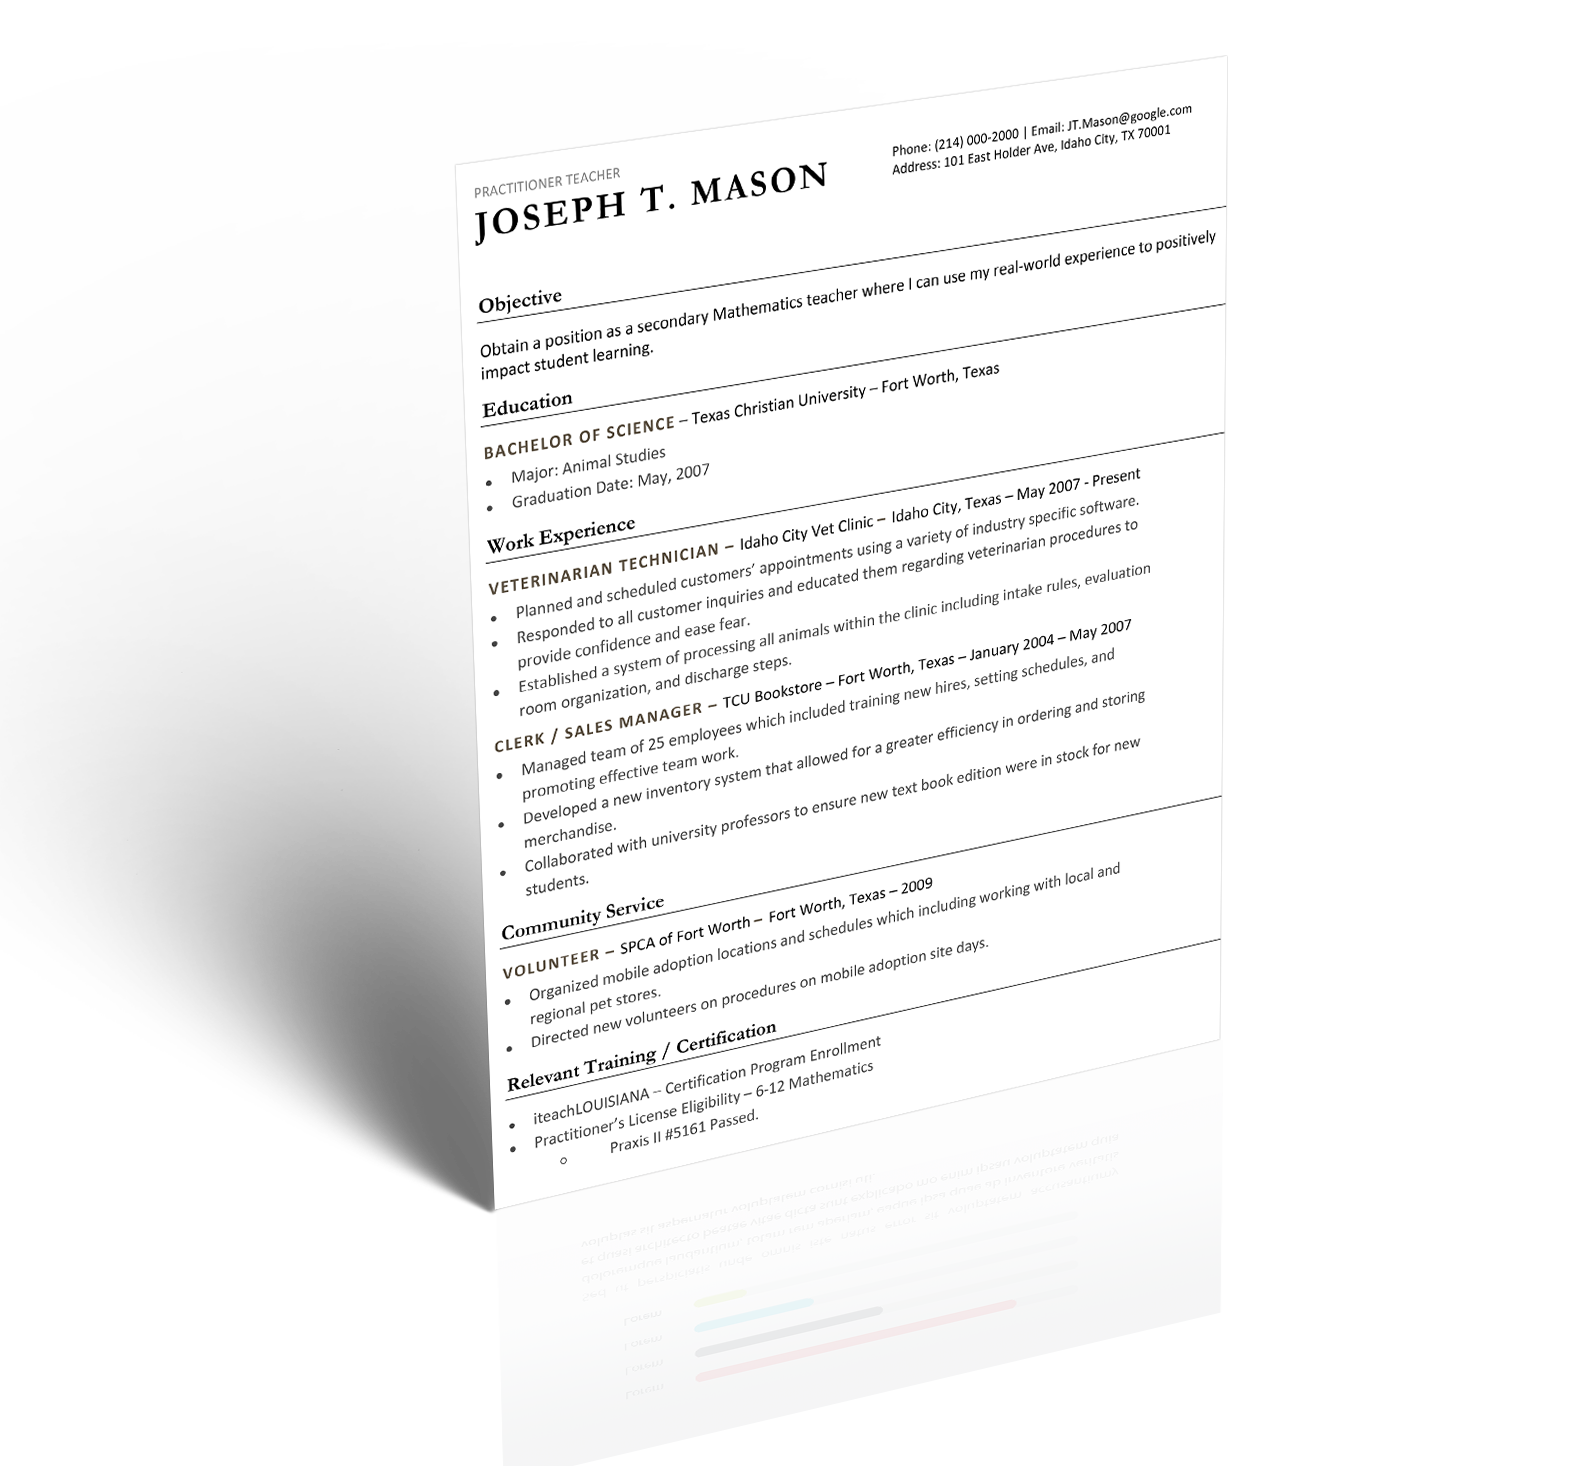 Teacher resume 5 minute guide to writing the perfect resume download template option 1 xflitez Image collections